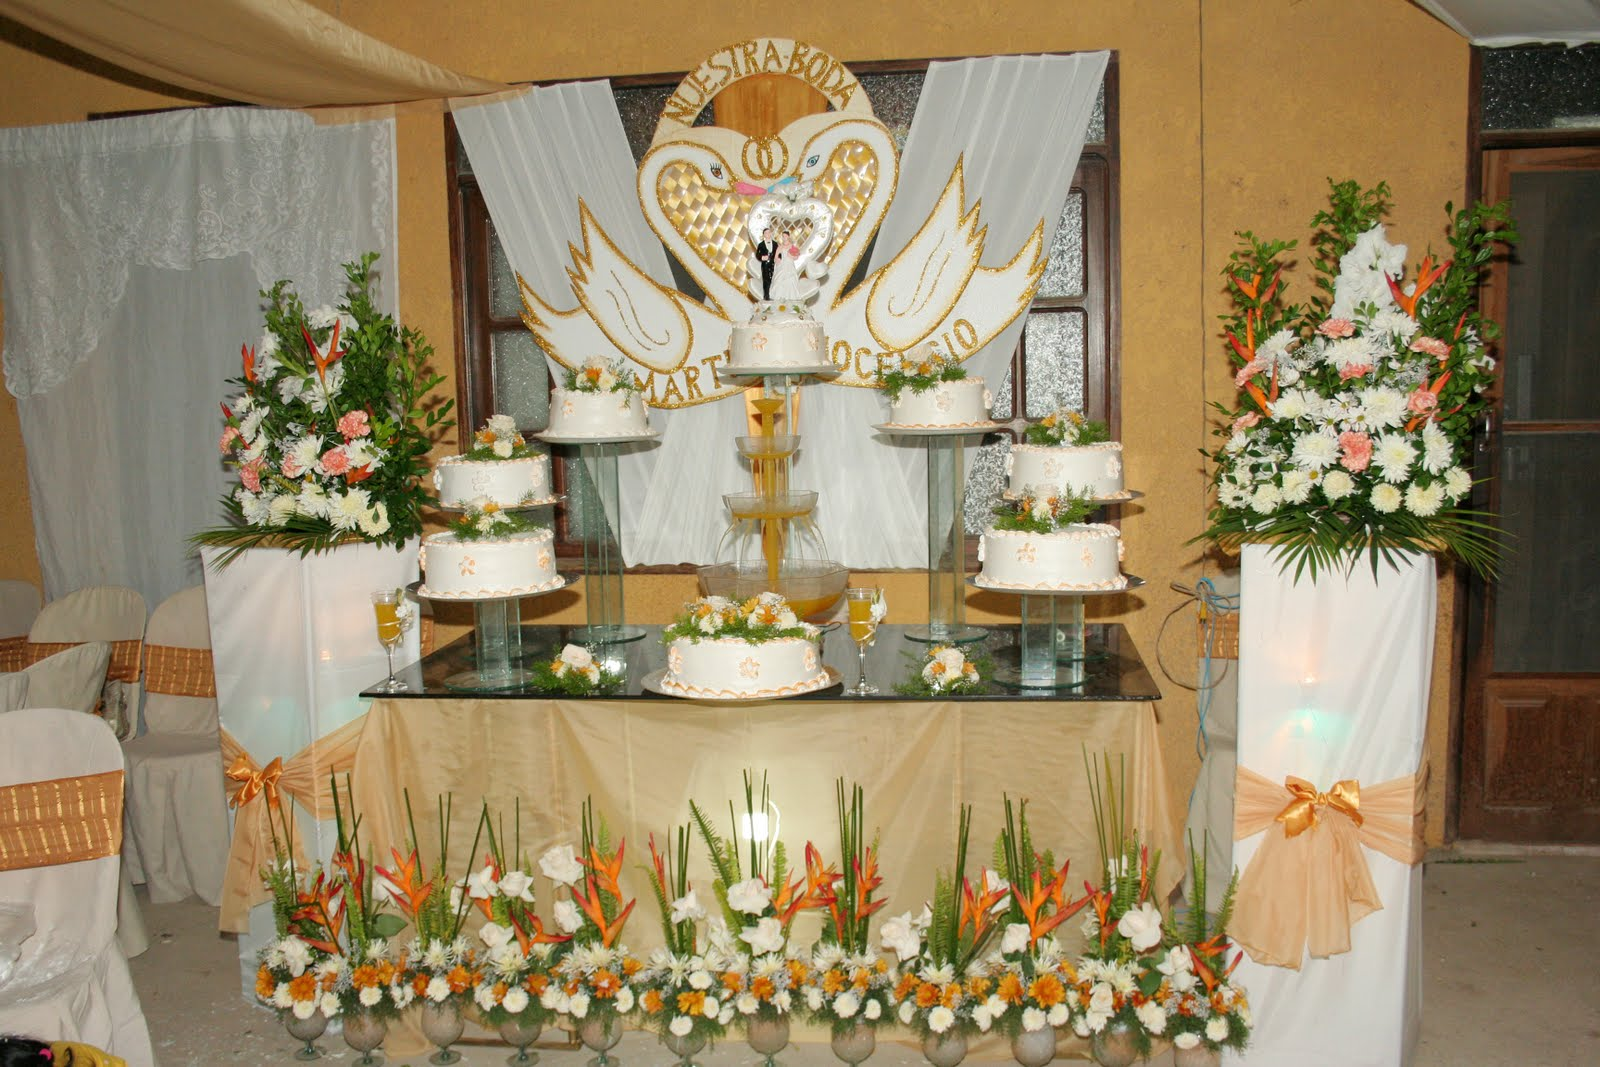 Como Decorar Un Pastel De Boda Civil Facil Y Rapido: Decoraciones De Bizcochos Cake Ideas And Designs